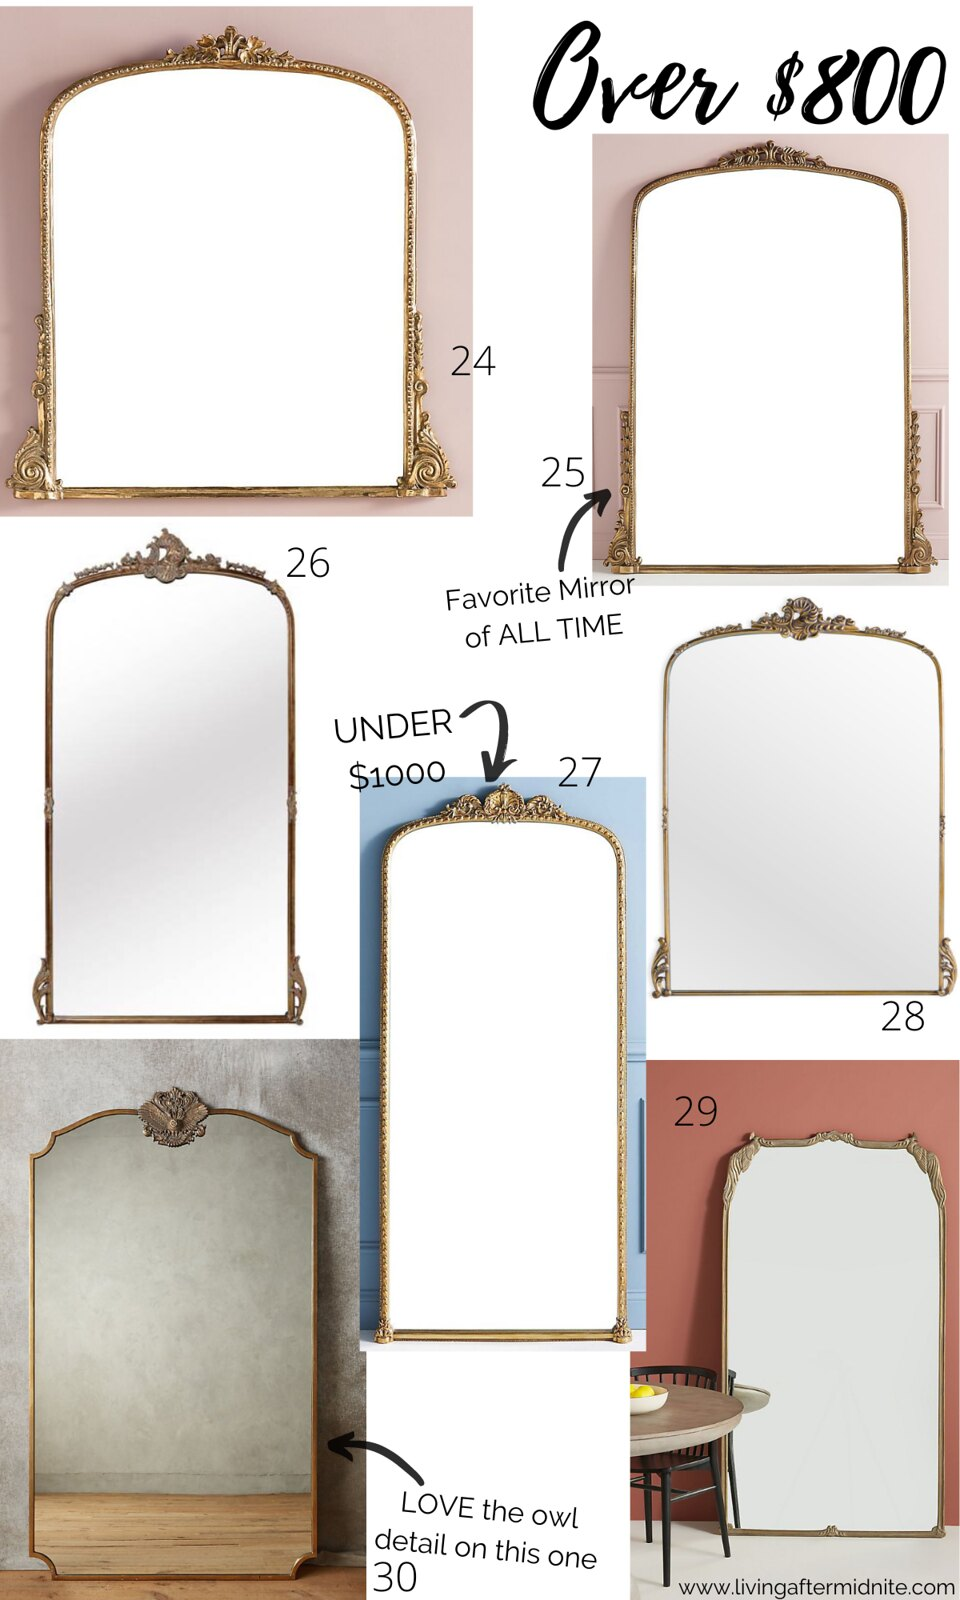 Currently Obsessed with Vintage Gold Mirrors | Antique Looking Mirrors over $800